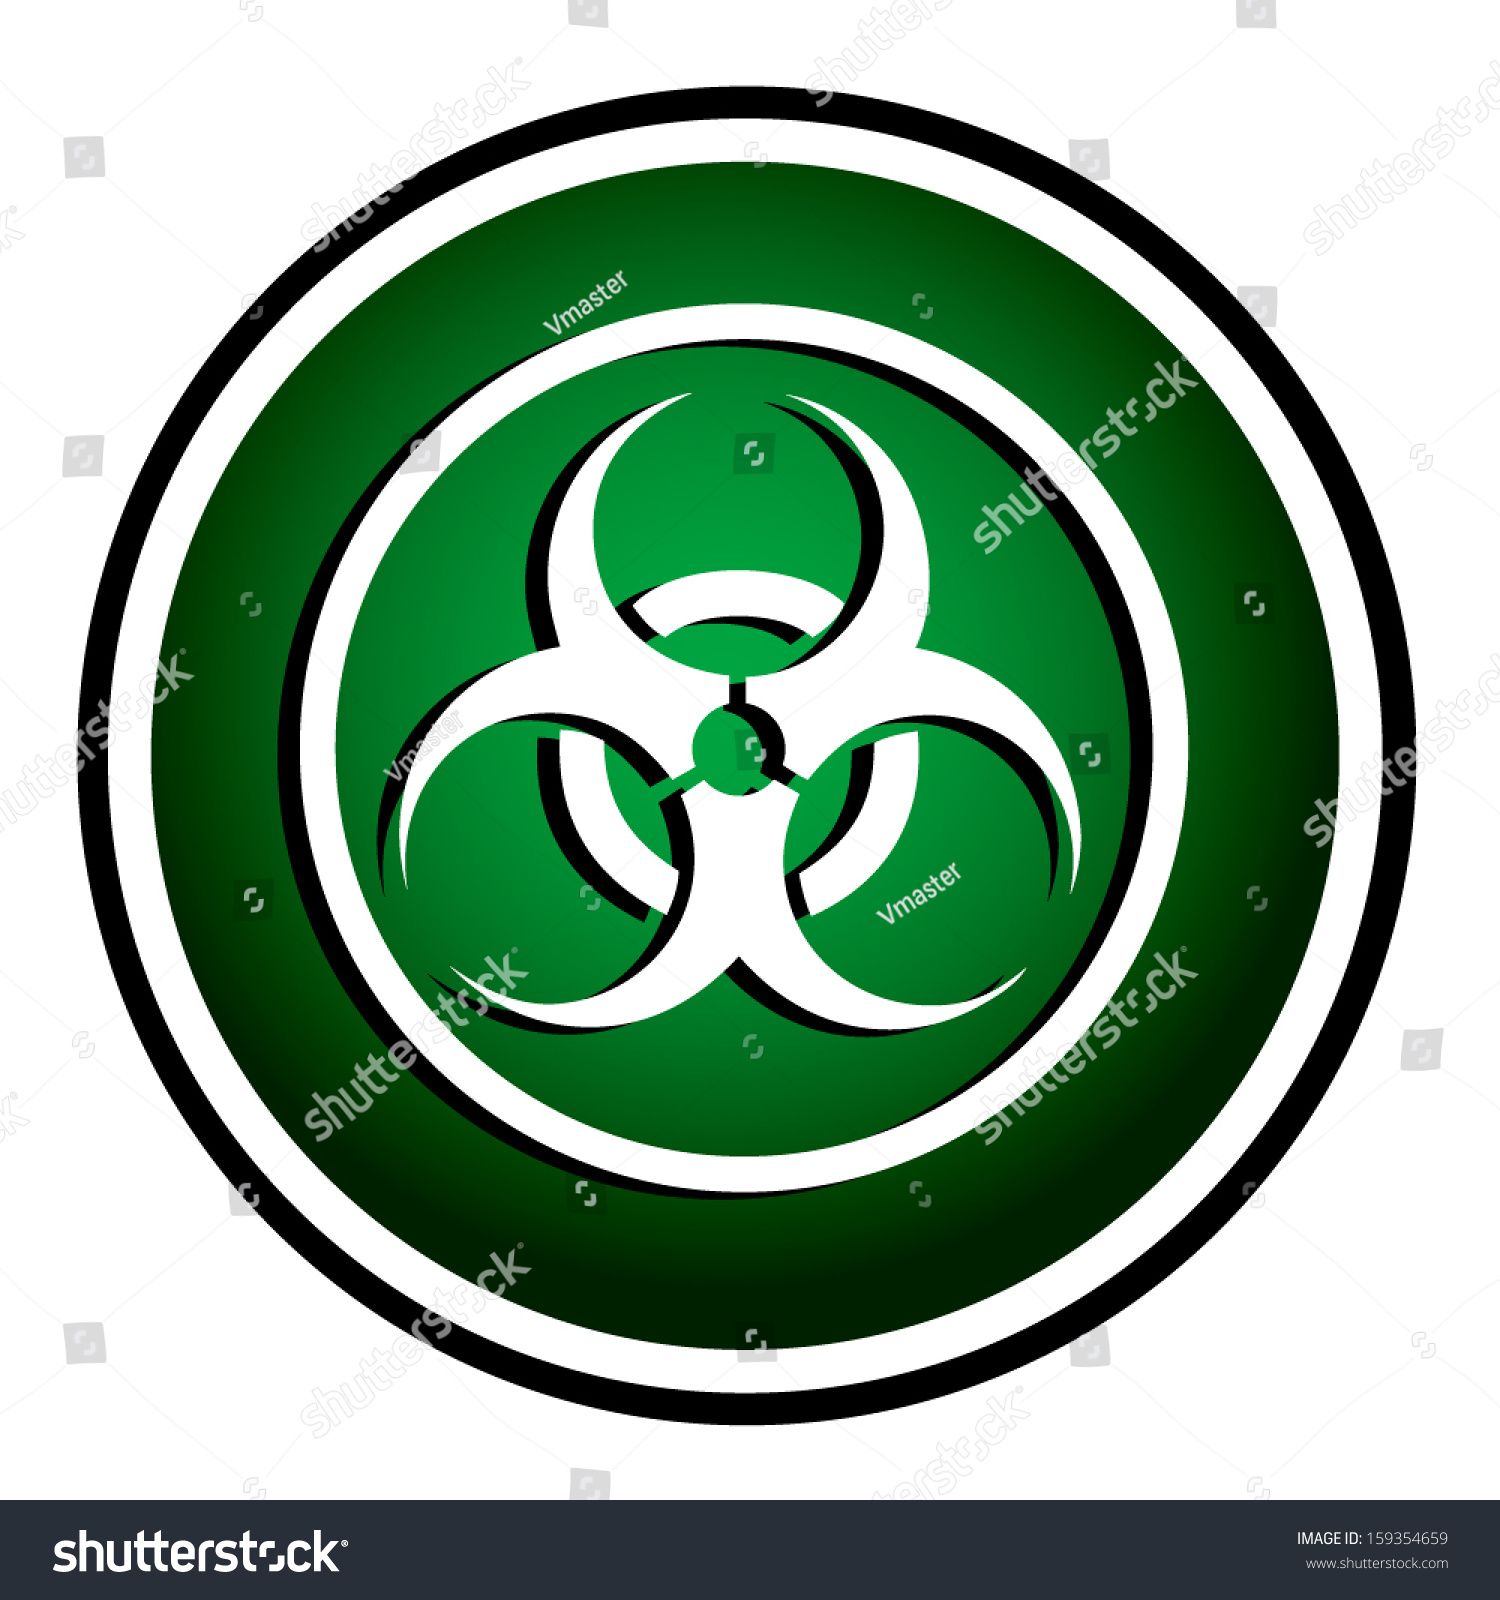 Warning symbol biohazard green round icon stock vector 159354659 warning symbol biohazard green round icon biocorpaavc Image collections